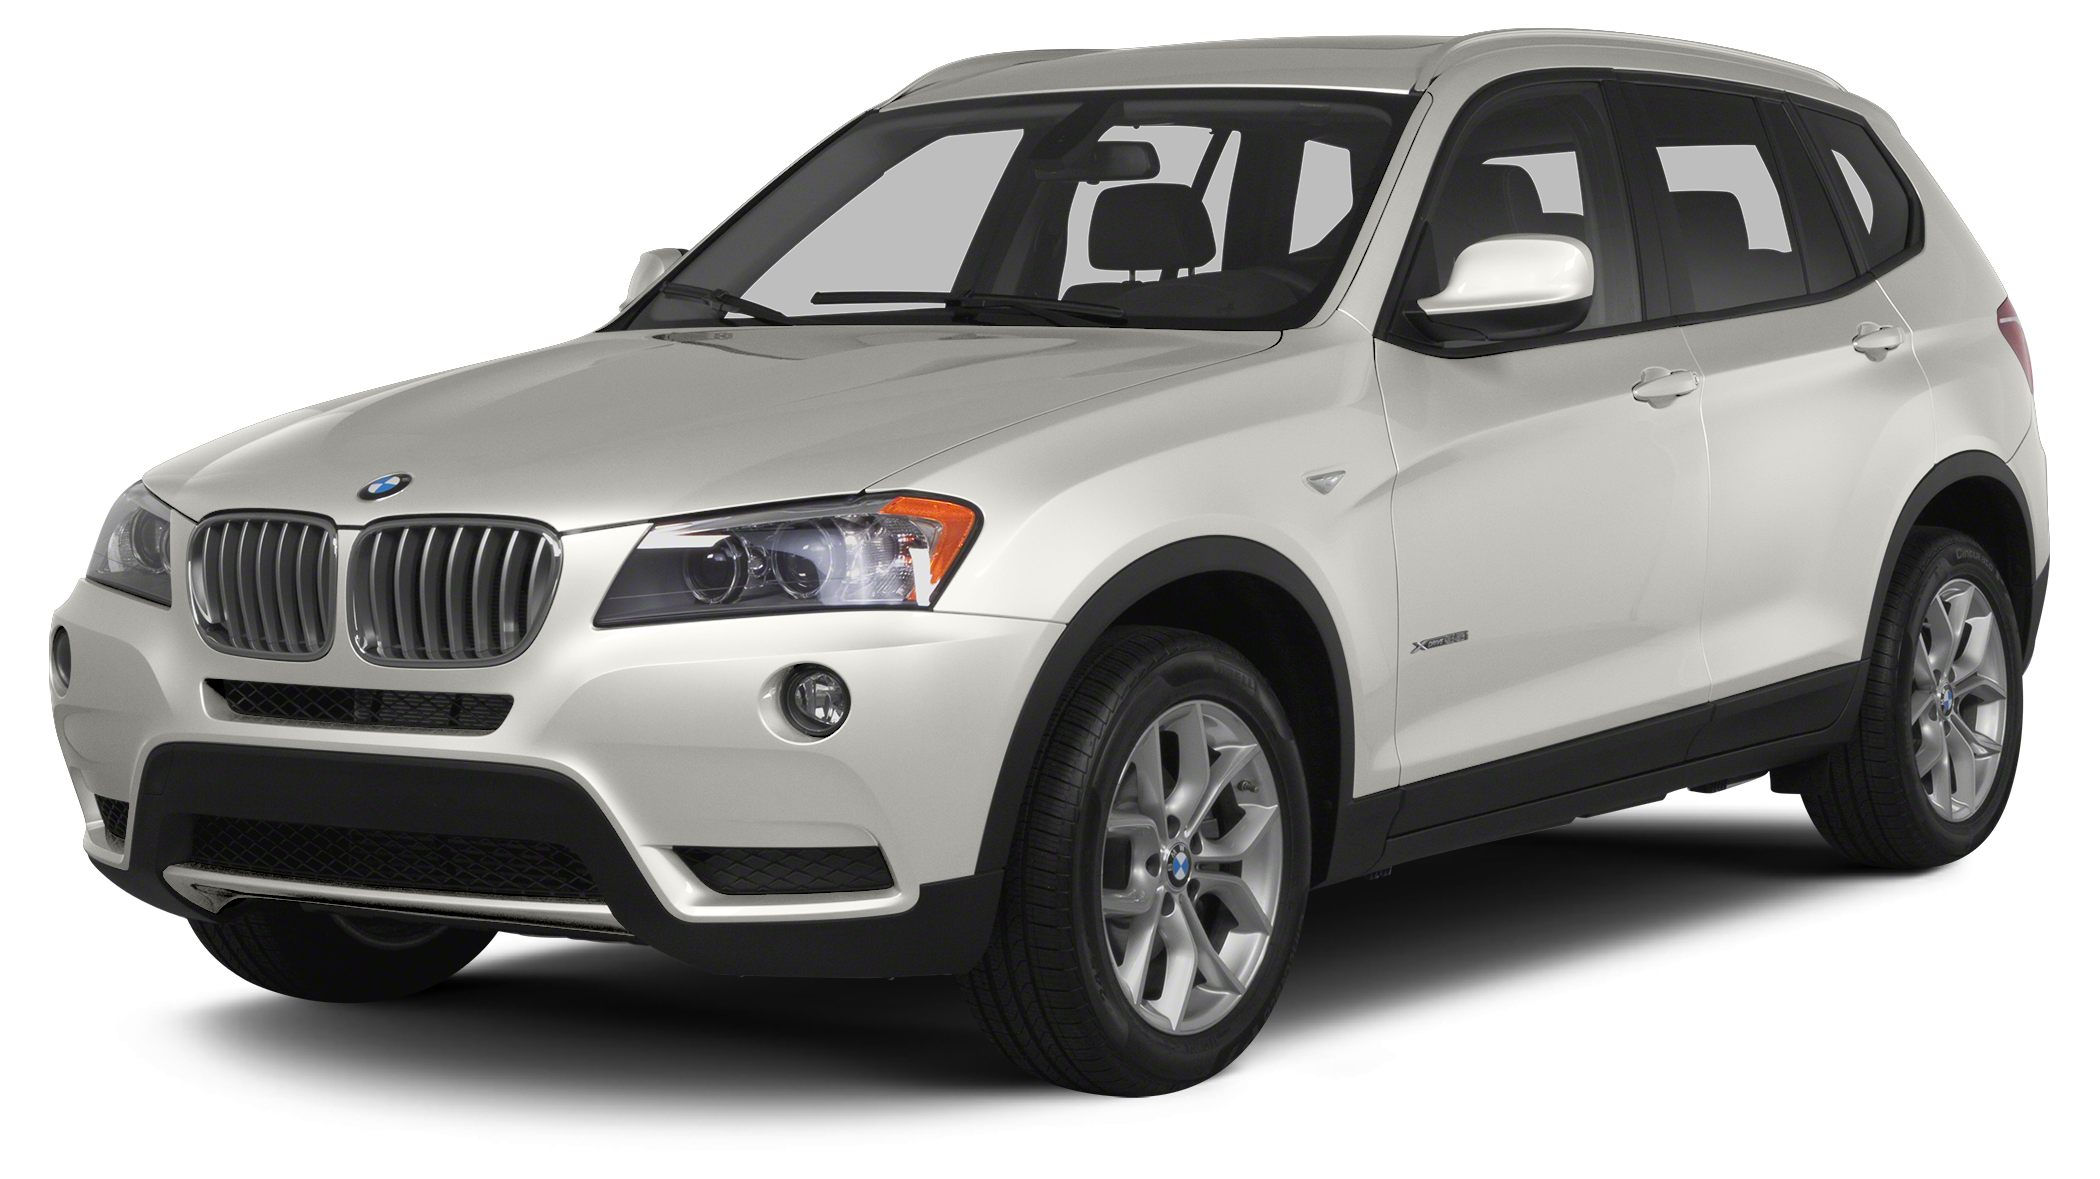 2013 BMW X3 xDrive28i M SPORT PACKAGE HEATED SEATS UPGRADED M SPORT BODY KIT M SPORT INTERIOR